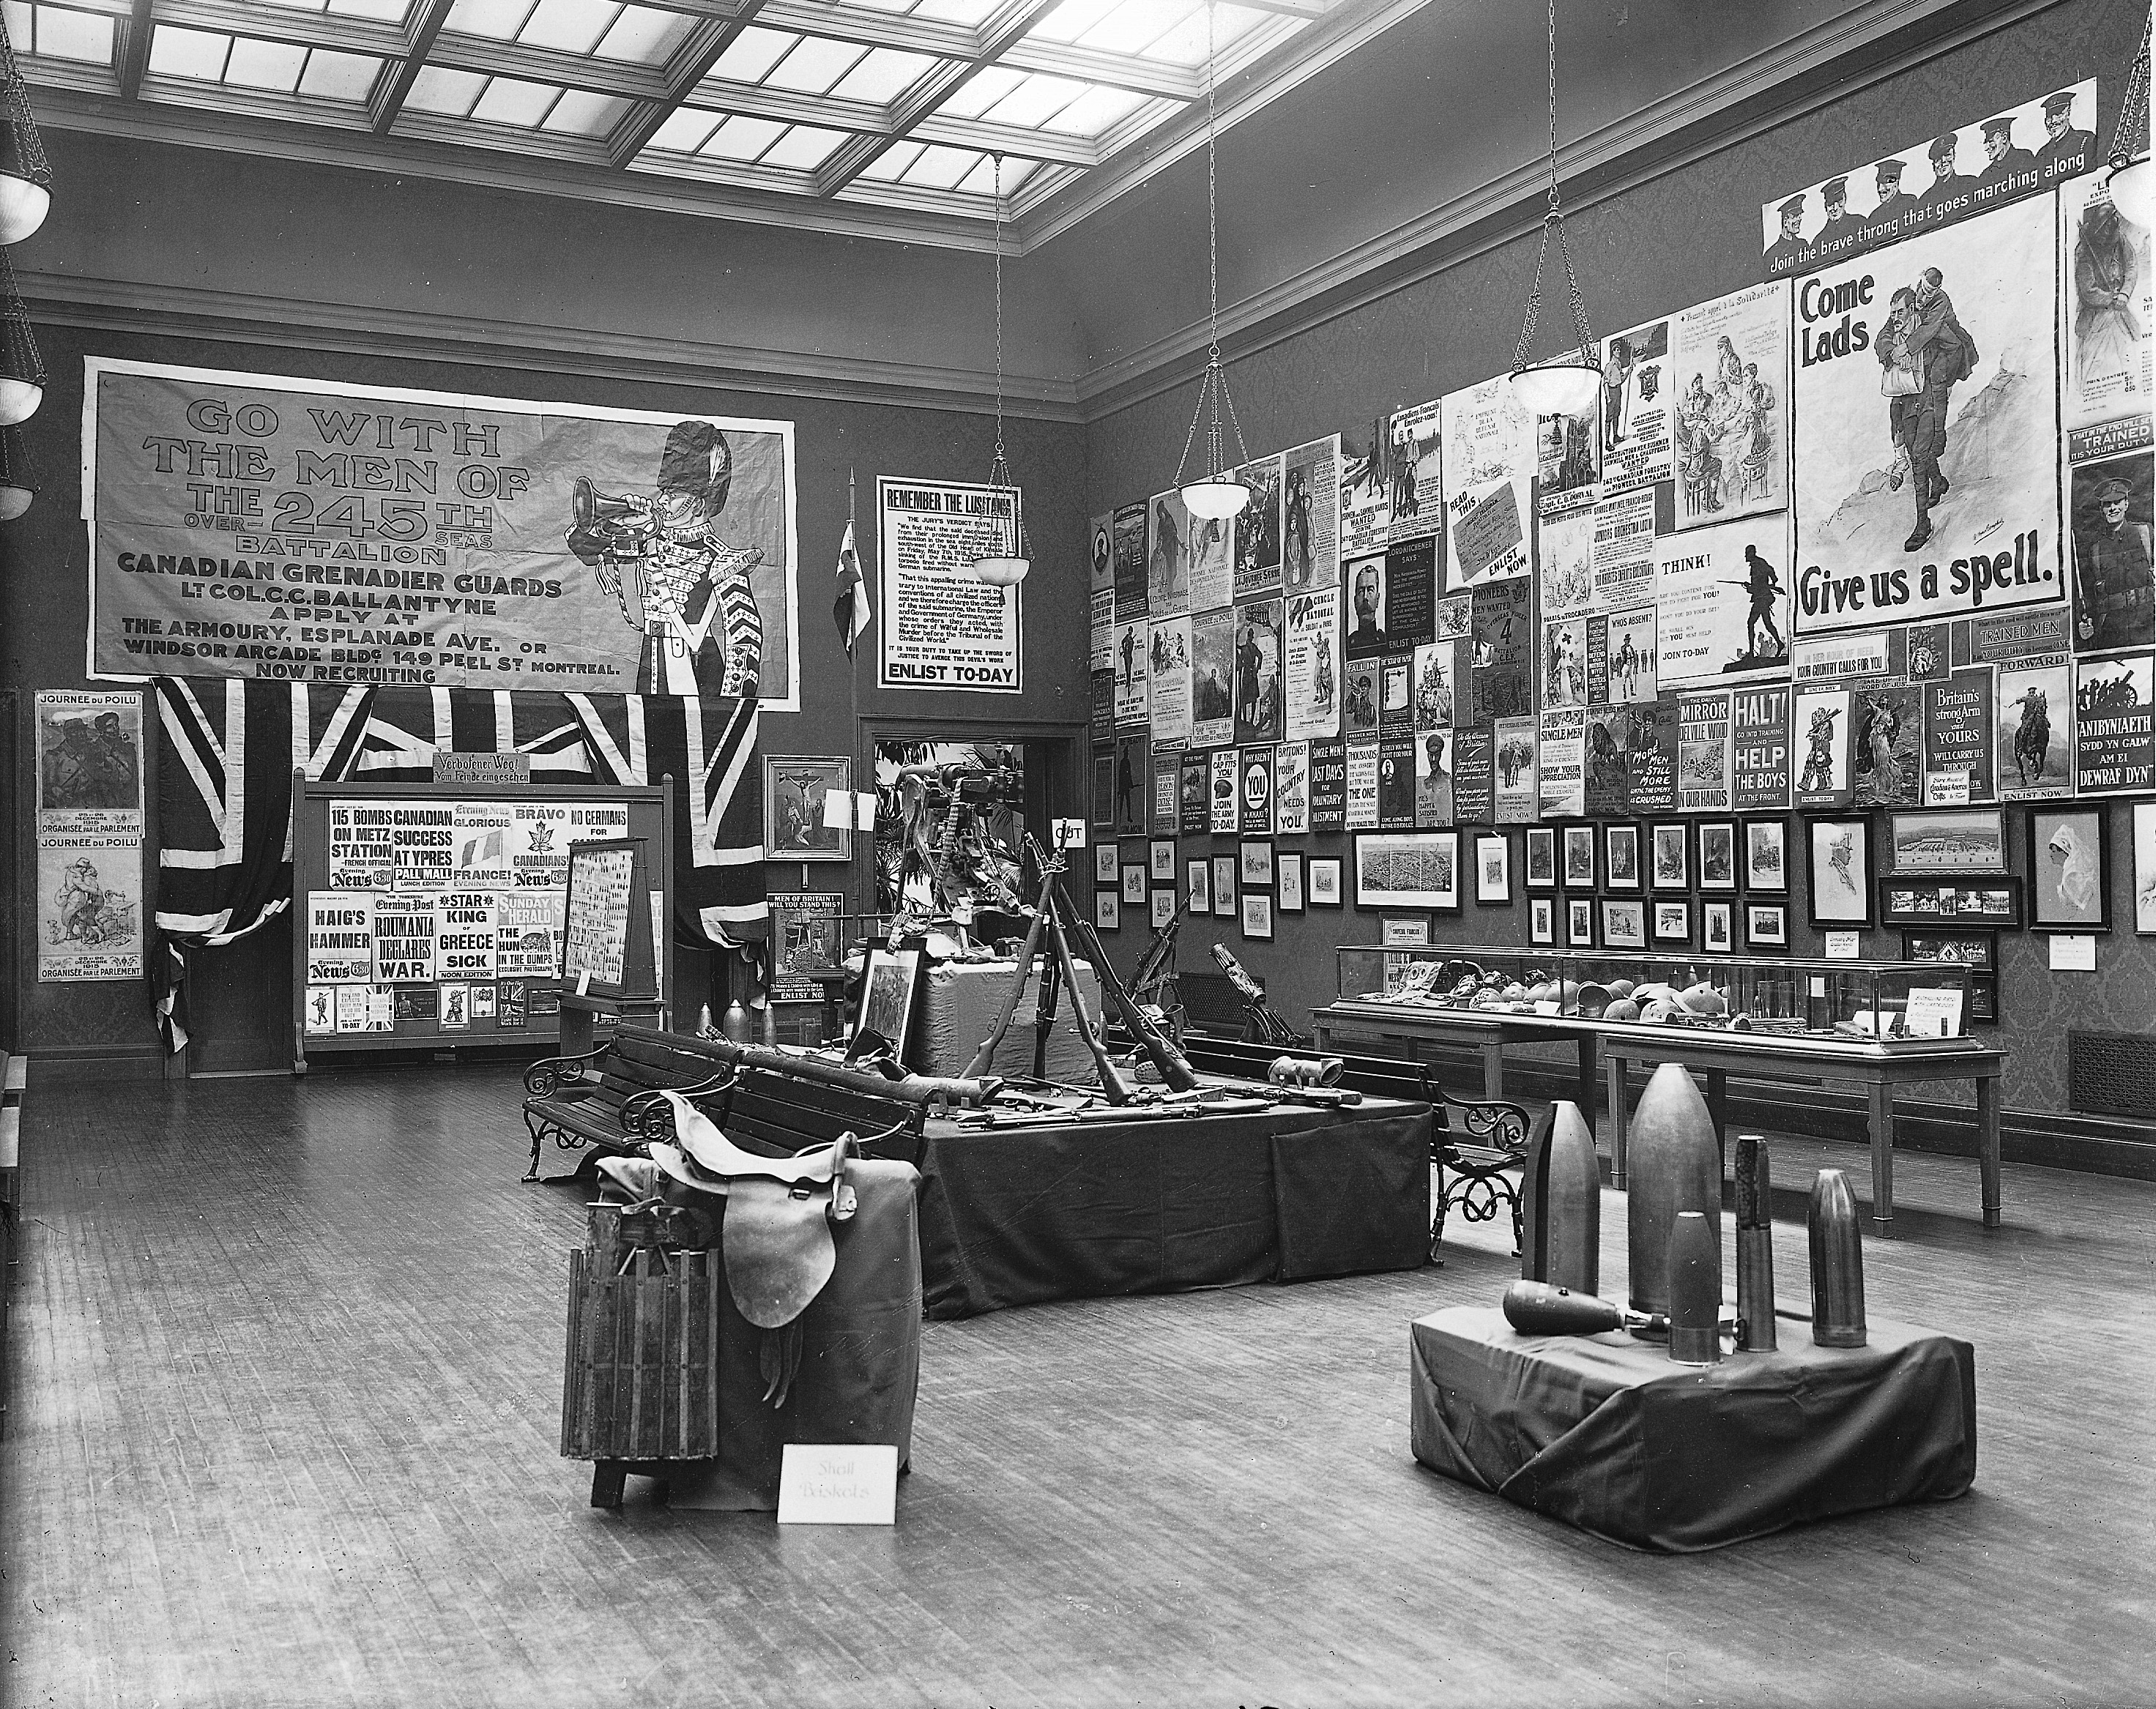 Recruiting Exhibition, Art Gallery?, Montreal, QC, 1916-17.